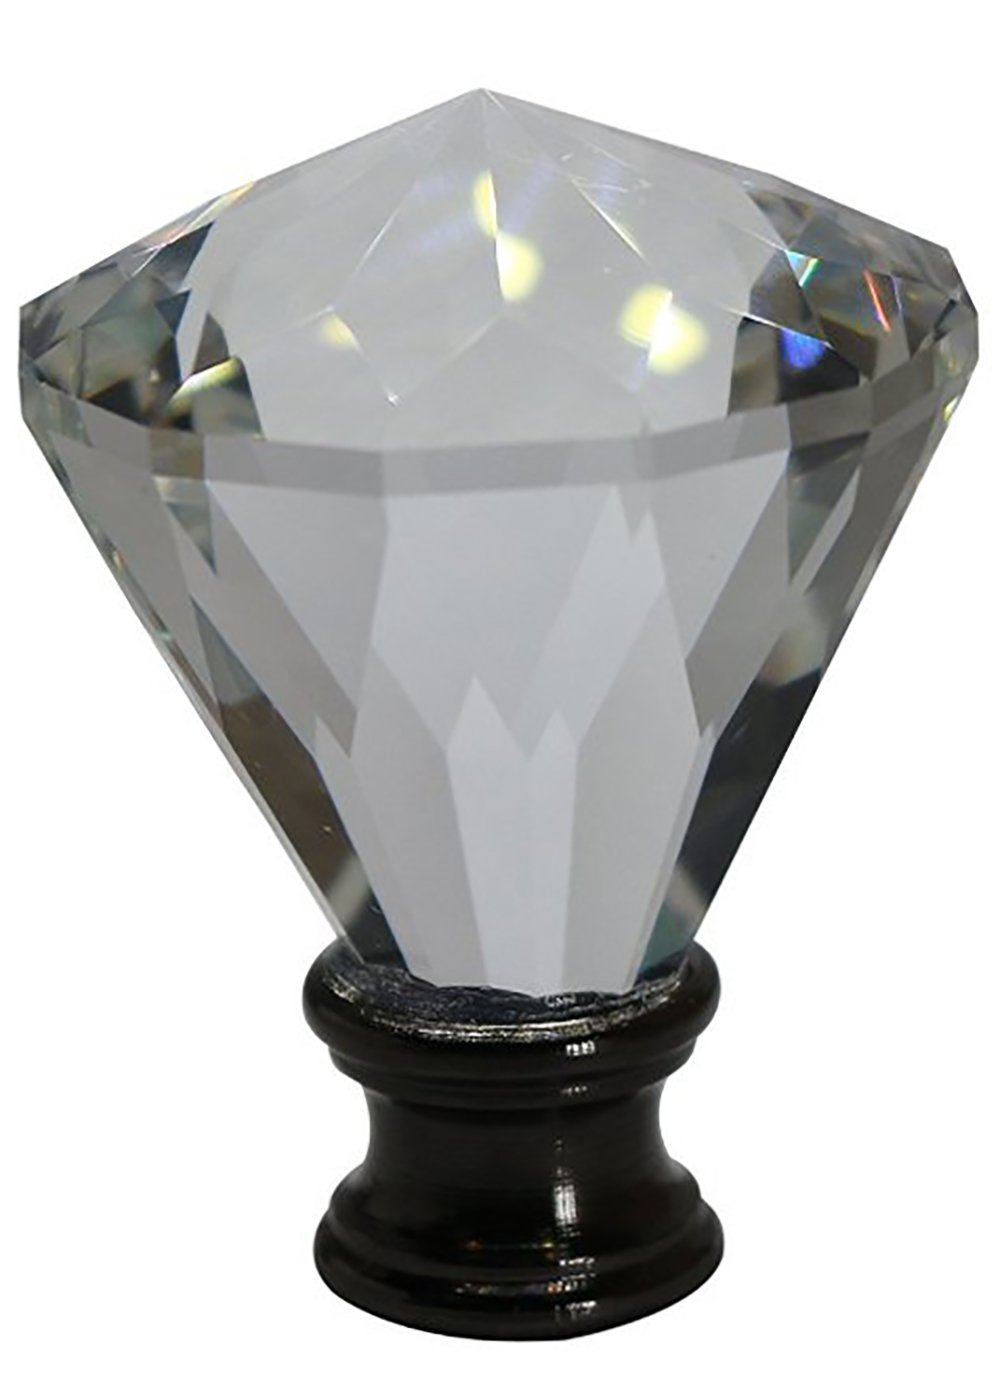 Urbanest Crystal Belle Lamp Finial, Black, 2 3/16-inch Tall